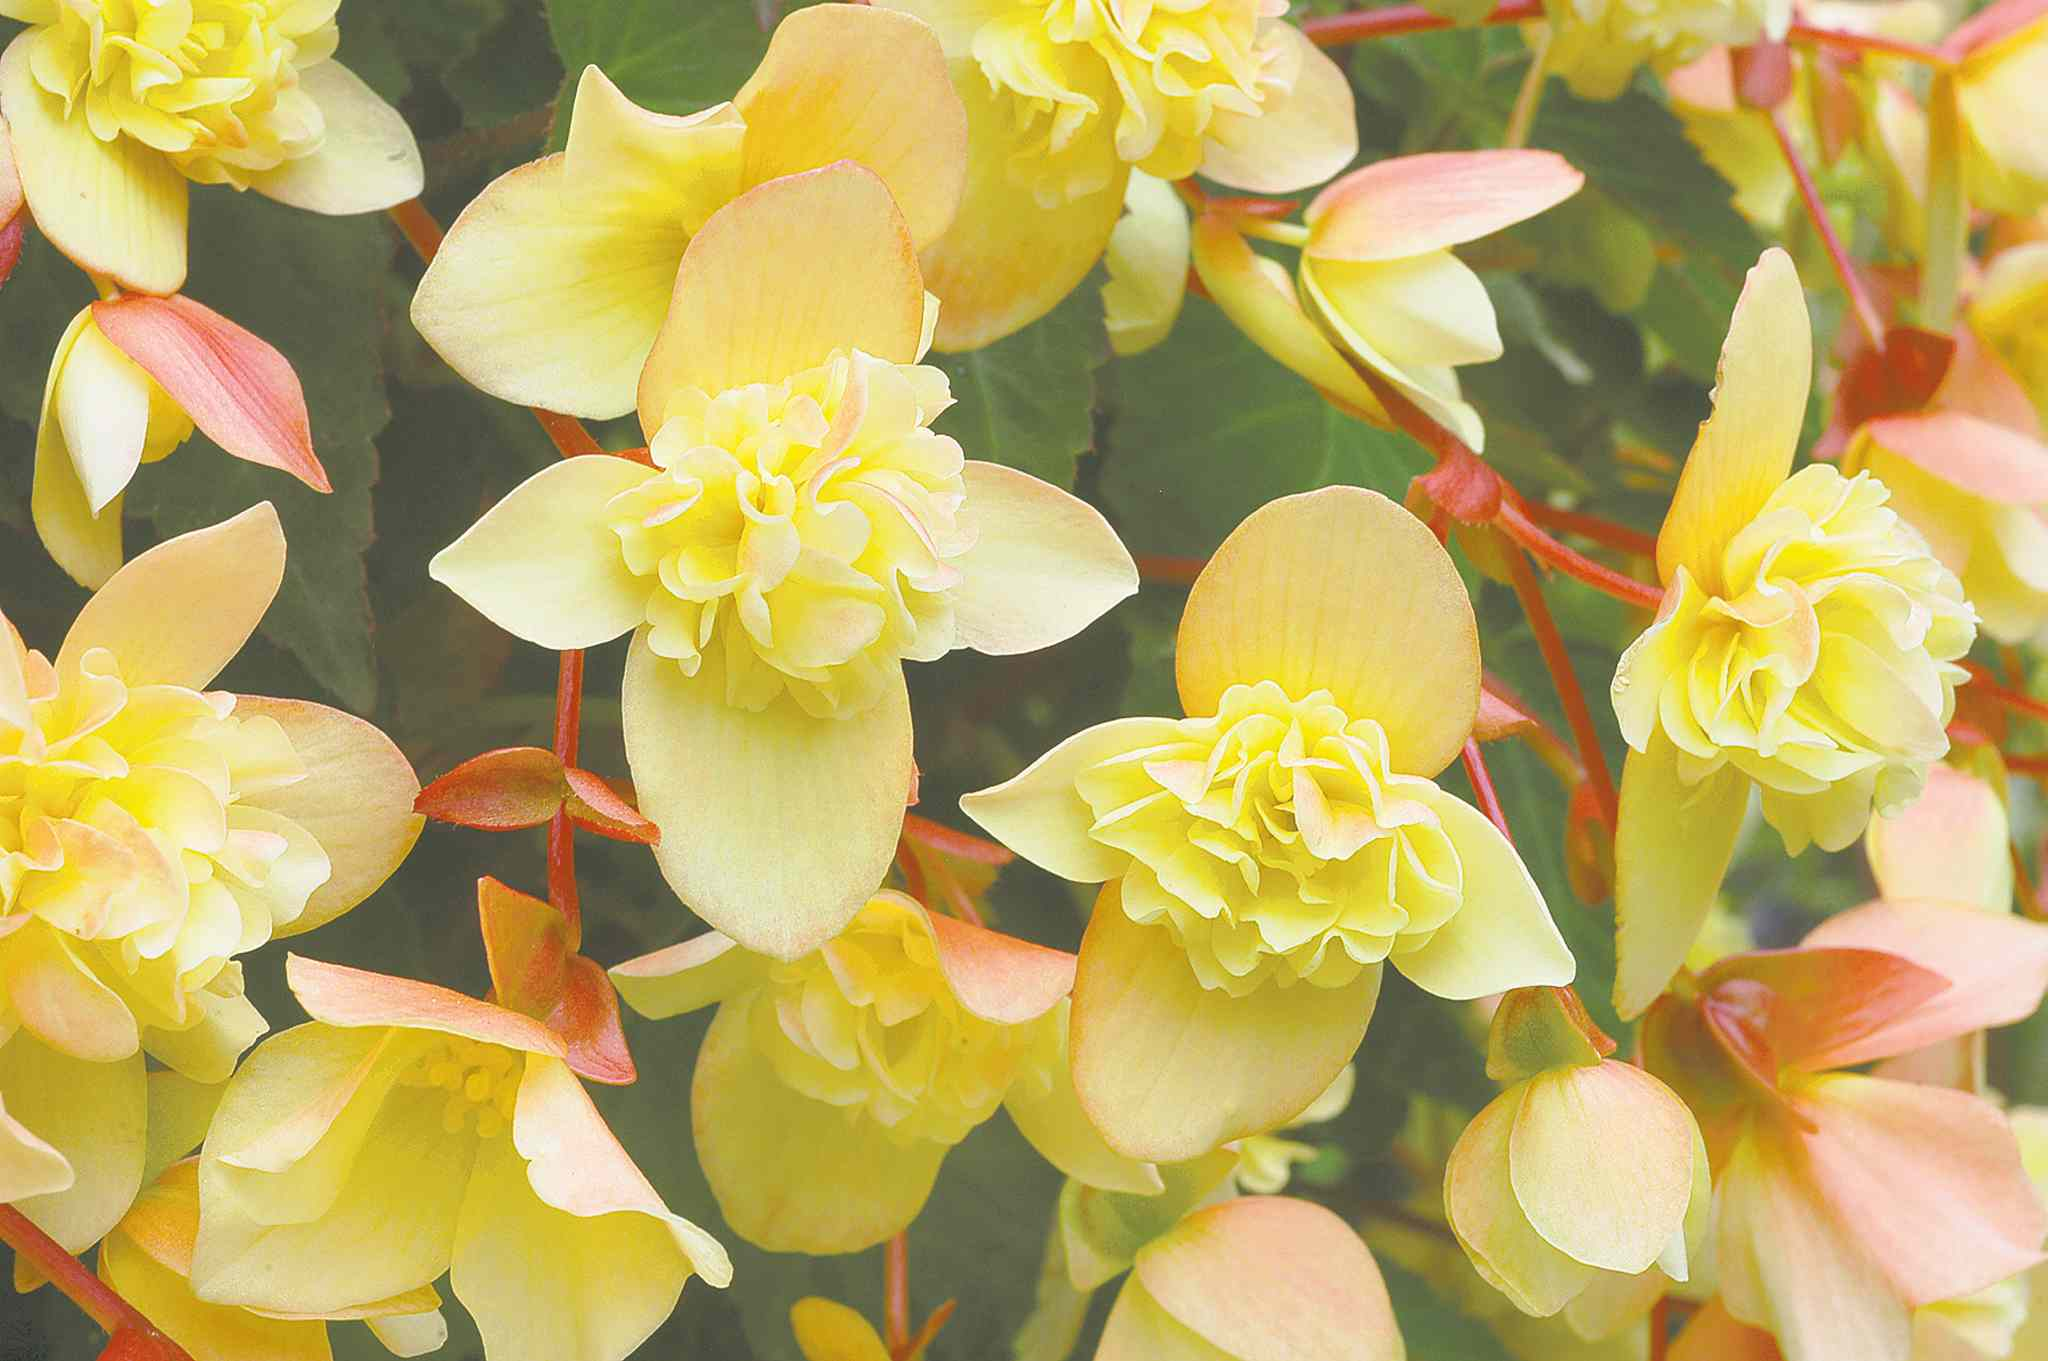 Dainty in both its appearance and bloom size, Sherbert Bon Bon begonia is available in crimson red or bright lemony yellow with pink undersides. Tolerant of part-sun.